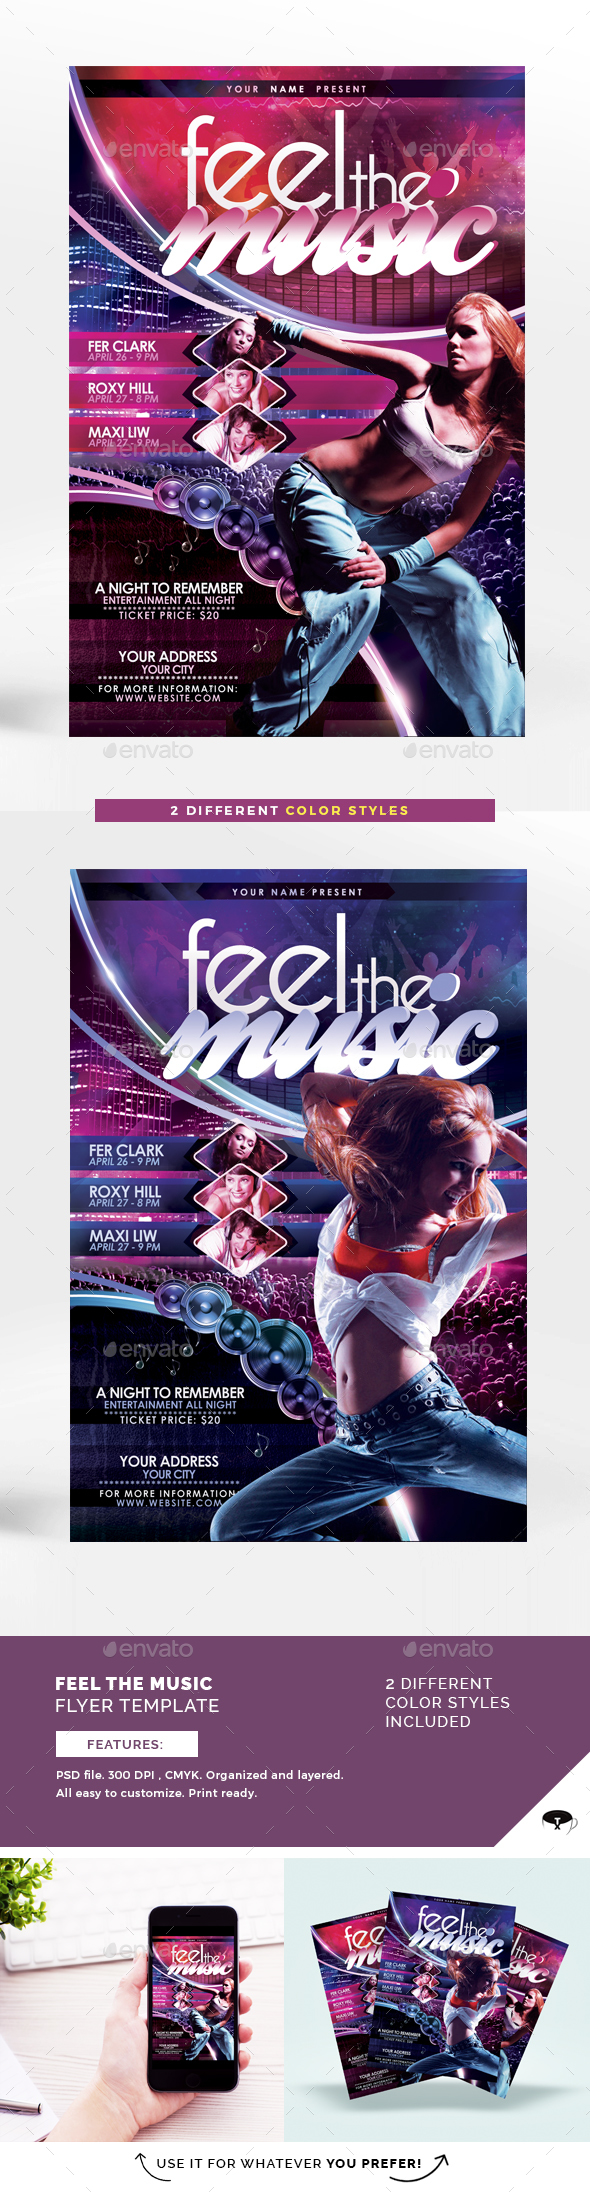 Feel The Music Flyer Template - Flyers Print Templates